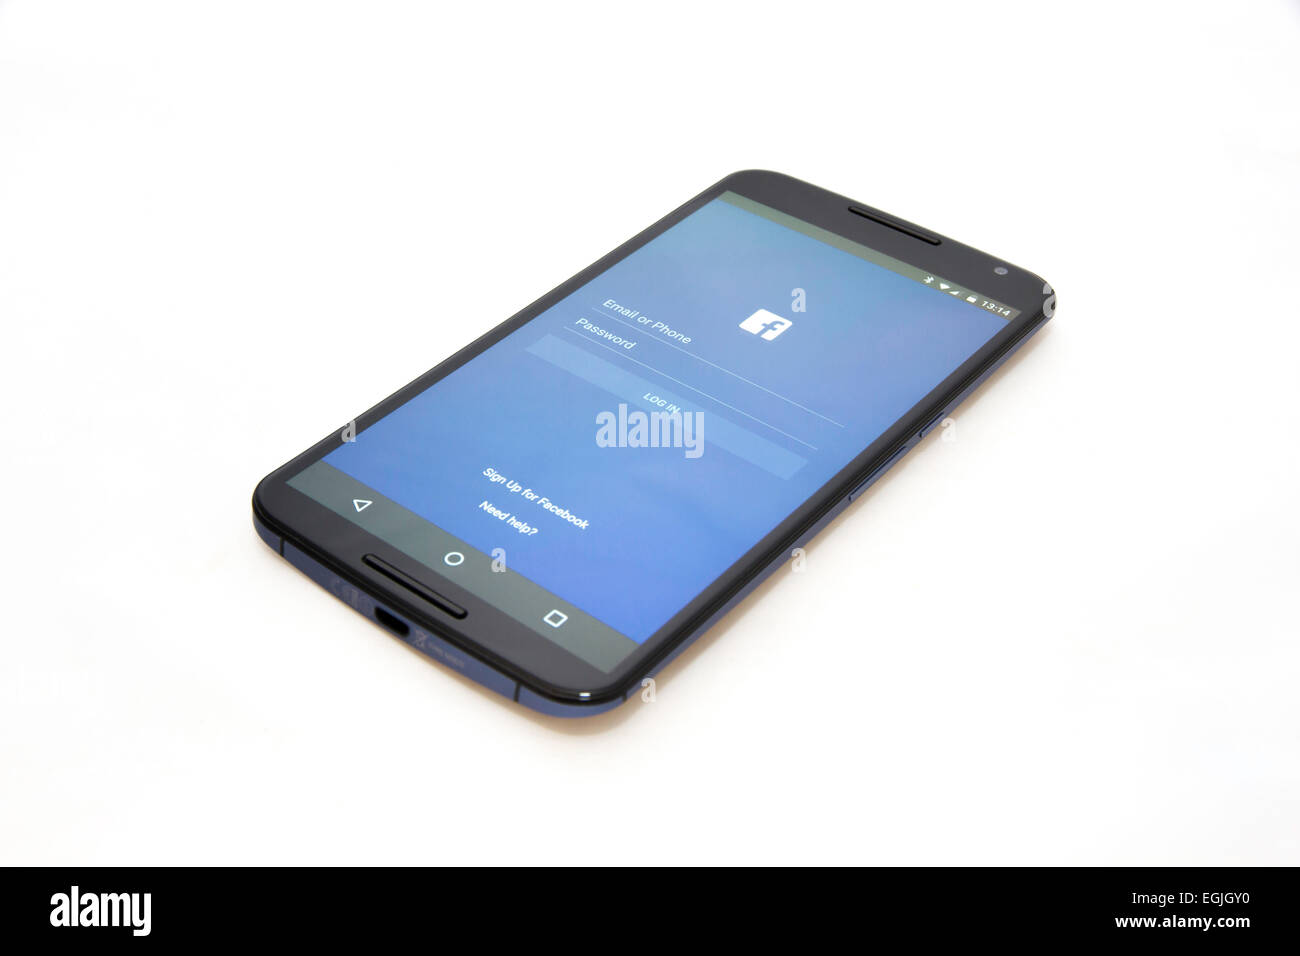 Touchscreen smartphone showing the Facebook login screen - Stock Image